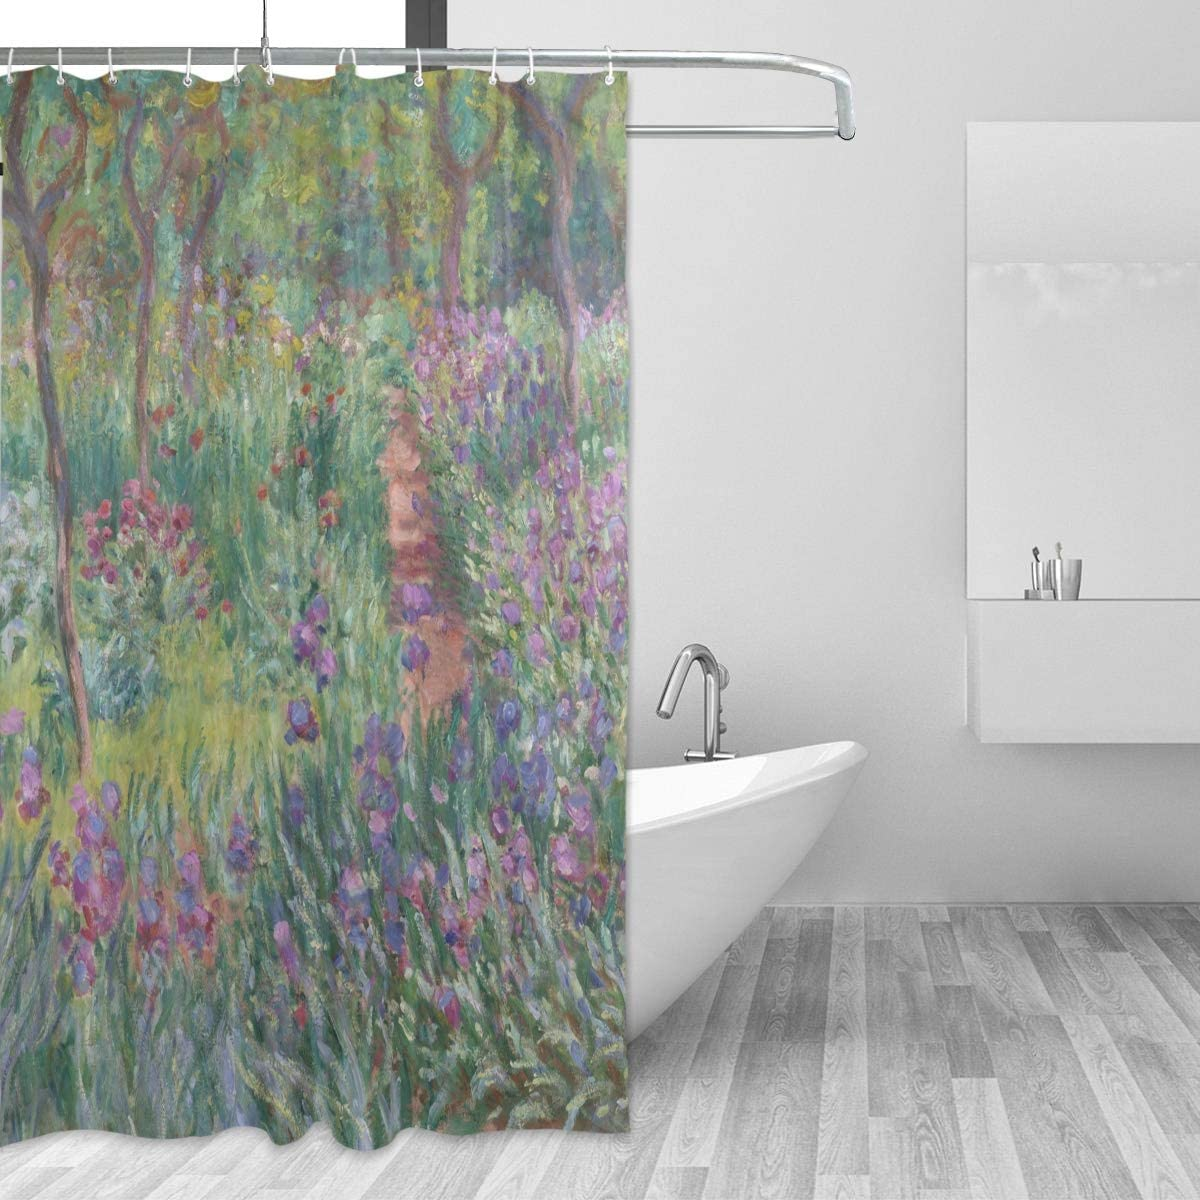 AHOMY Shower Curtain Set 72 x 72 Inches, Monet's Iris Garden at Giverny Bath Curtain Waterproof Bathroom Shower Curtains with 12 Hooks